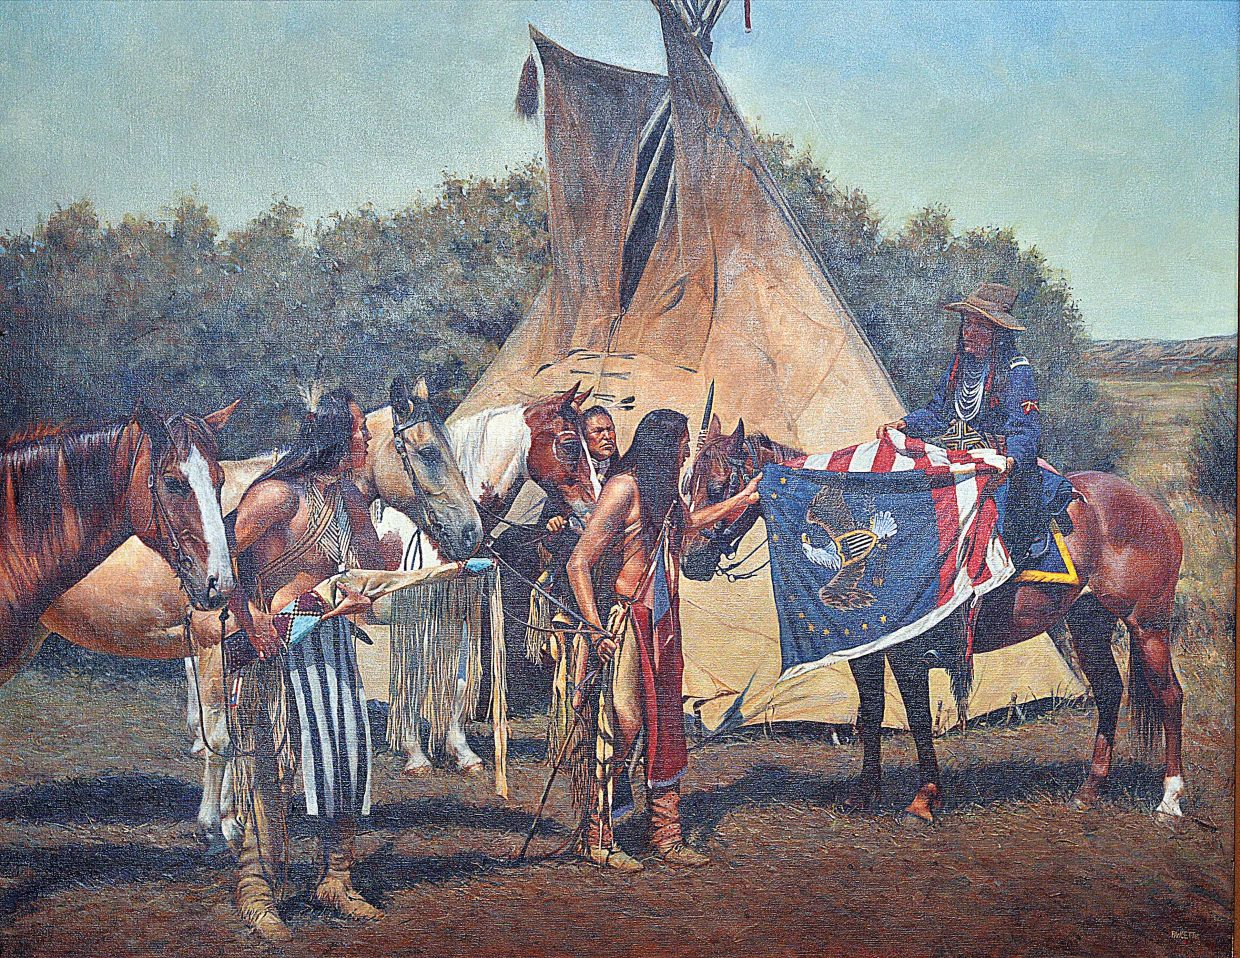 """This John Fawcett Oil Painting """"The Chief's Flag"""" was created in 2012 using models to recreate the situation. The painting is part of the Raymond James Financial Collection collection owned by Tom and Mary James a Hannon and is on display as part of a retrospective show by Fawcett that will be featured at the Steamboat Art Museum."""